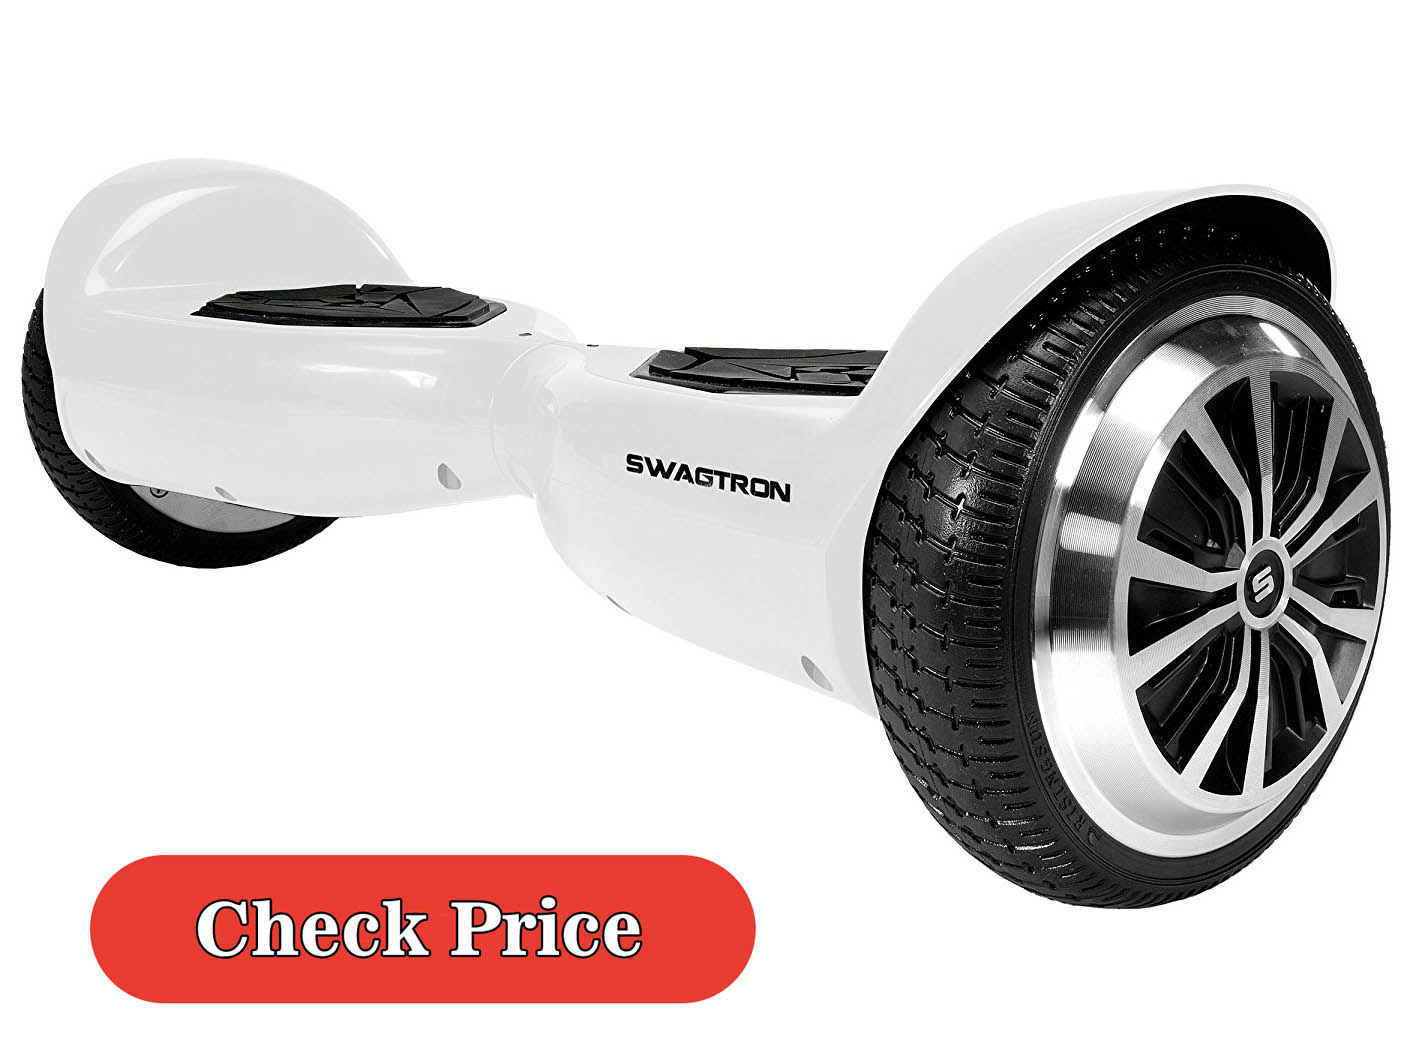 SWAGTRON T5 kids hoverboard